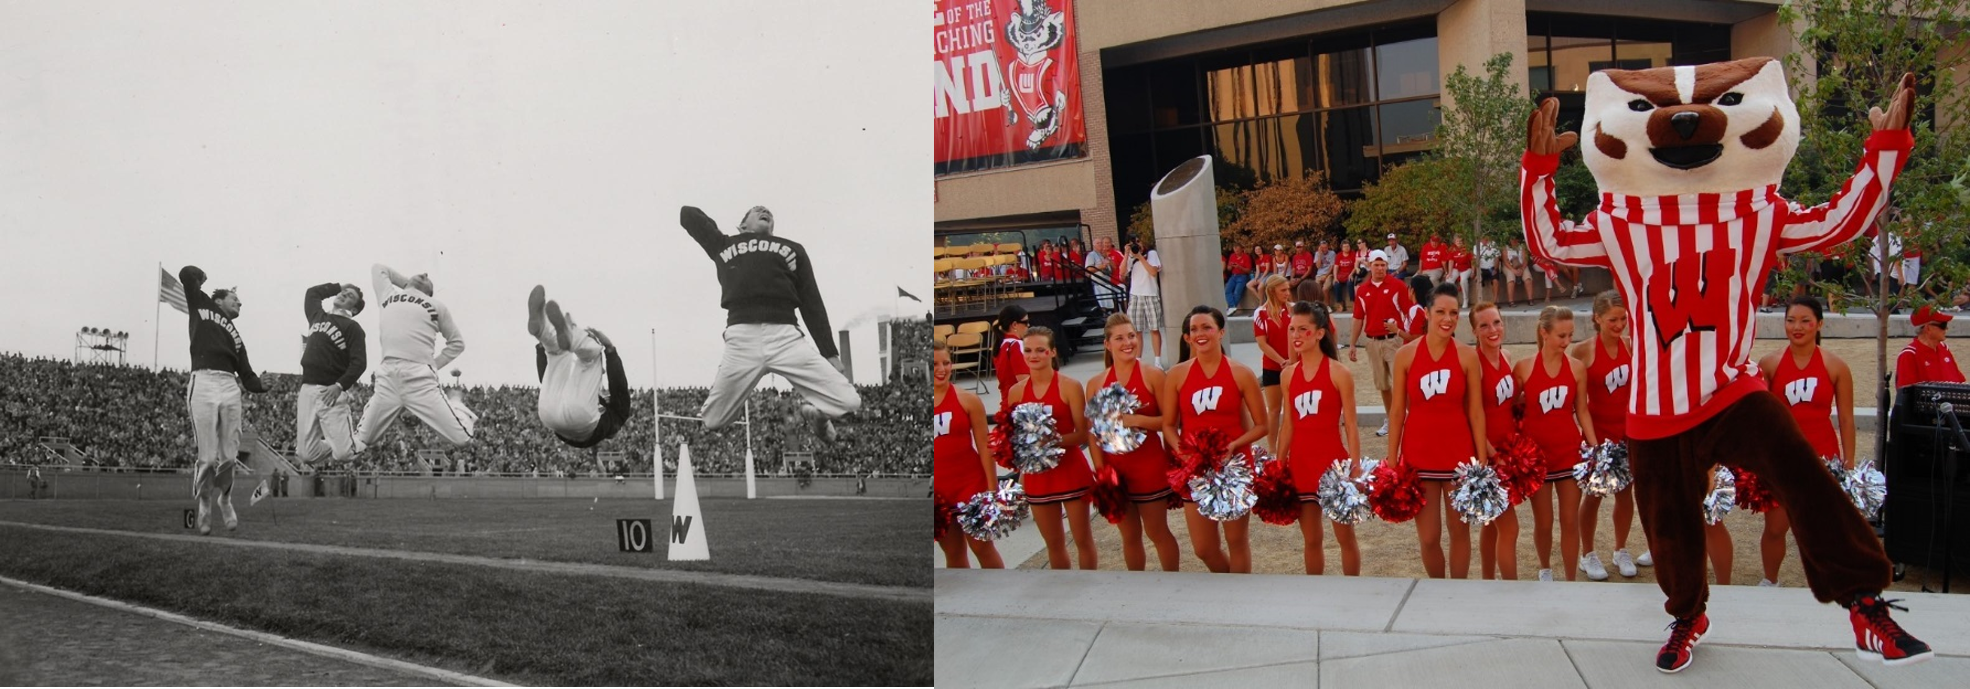 Left: 1950s cheerleaders bend over backwards to cheer on the Badgers football team. Right: Bucky joins in on a cheer with cheerleaders at a Badger Bash at Union South.